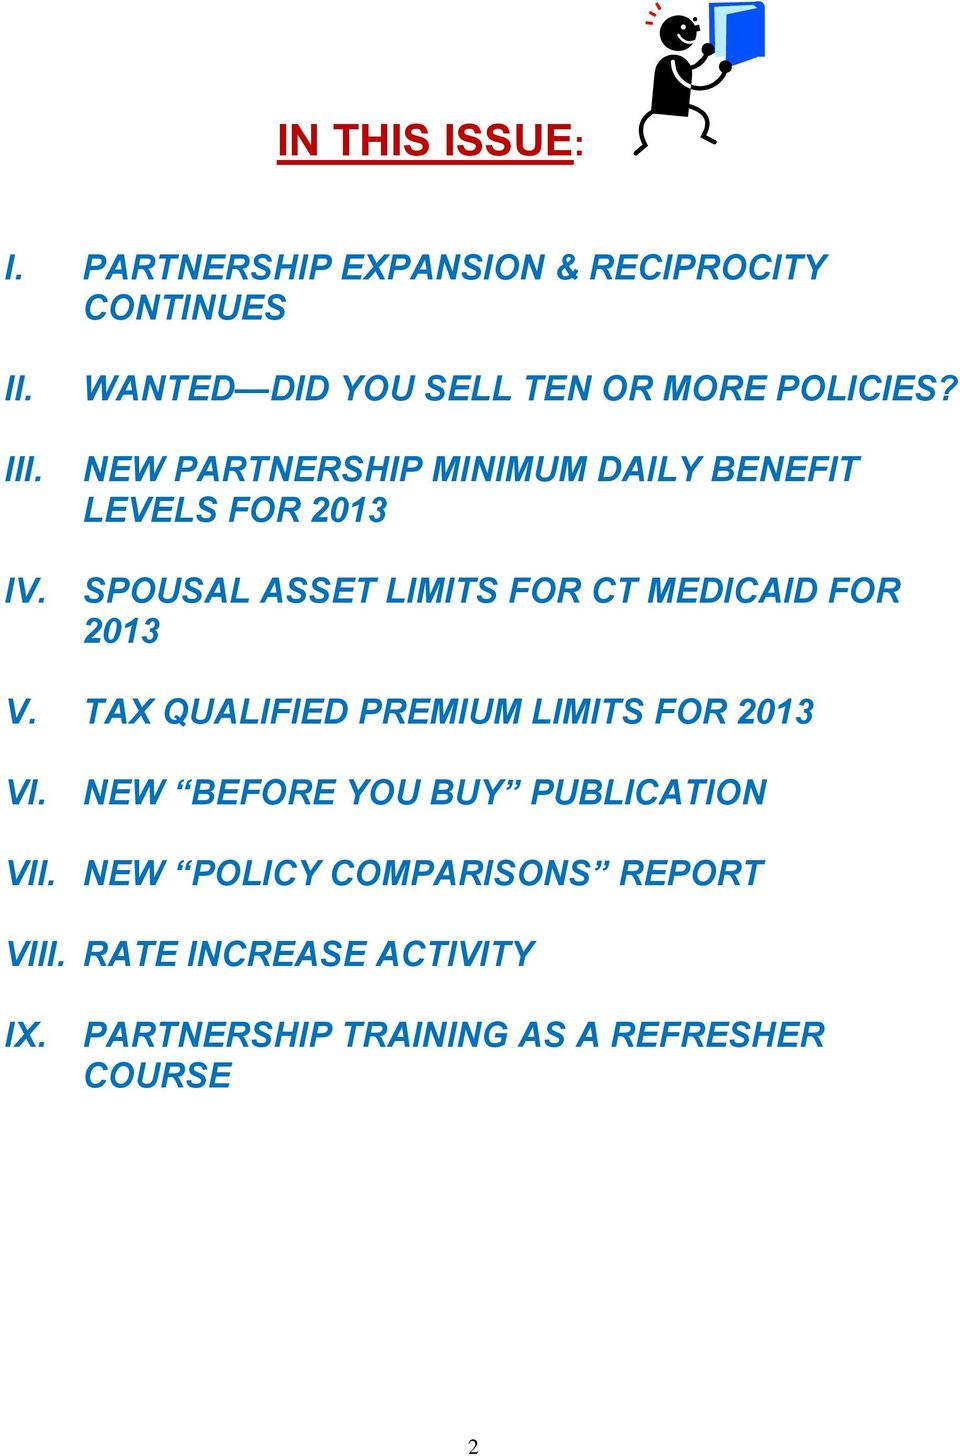 NEW PARTNERSHIP MINIMUM DAILY BENEFIT LEVELS FOR 2013 SPOUSAL ASSET LIMITS FOR CT MEDICAID FOR 2013 V.